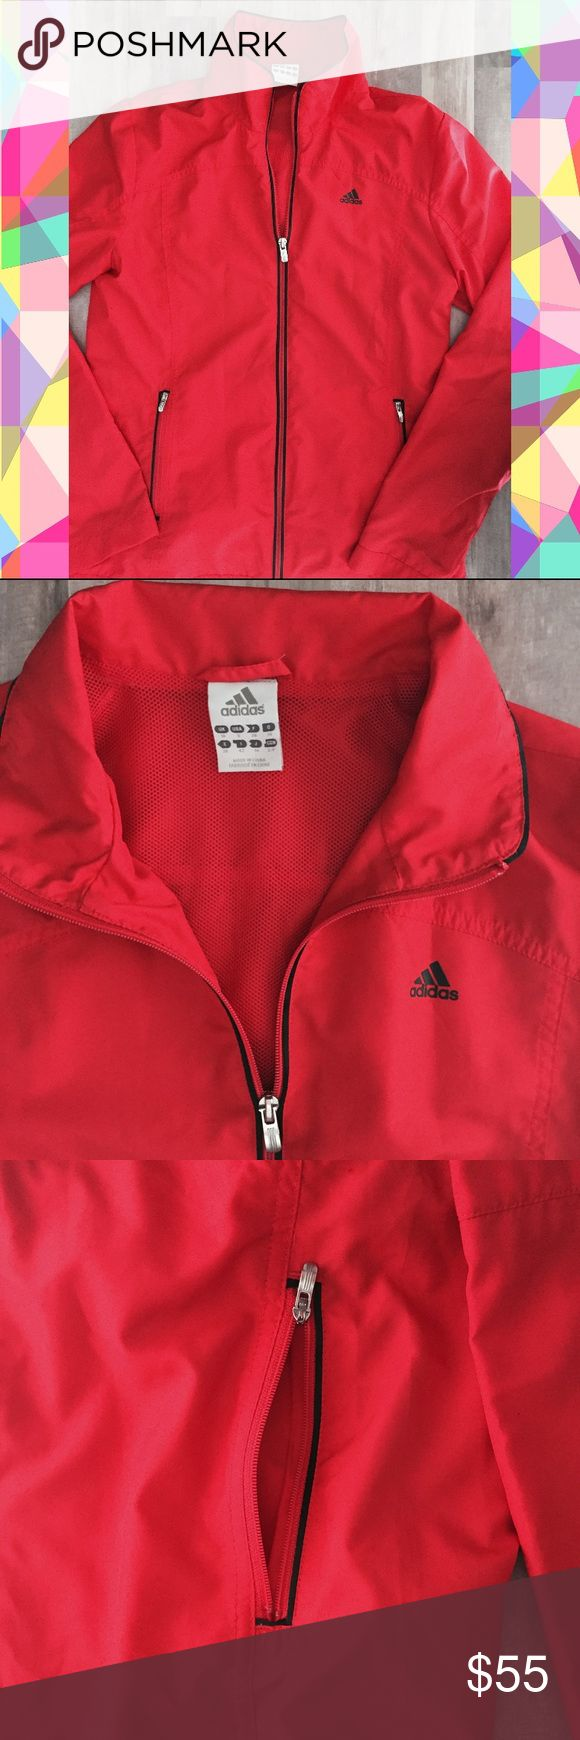 Adidas Red Windbreaker Jacket Excellent used condition and beautiful red color Adidas jacket. Features two side pockets, zips all the way up, Adidas logo in black and silver hardware. Comfy and so stylish! 😍 Adidas Jackets & Coats